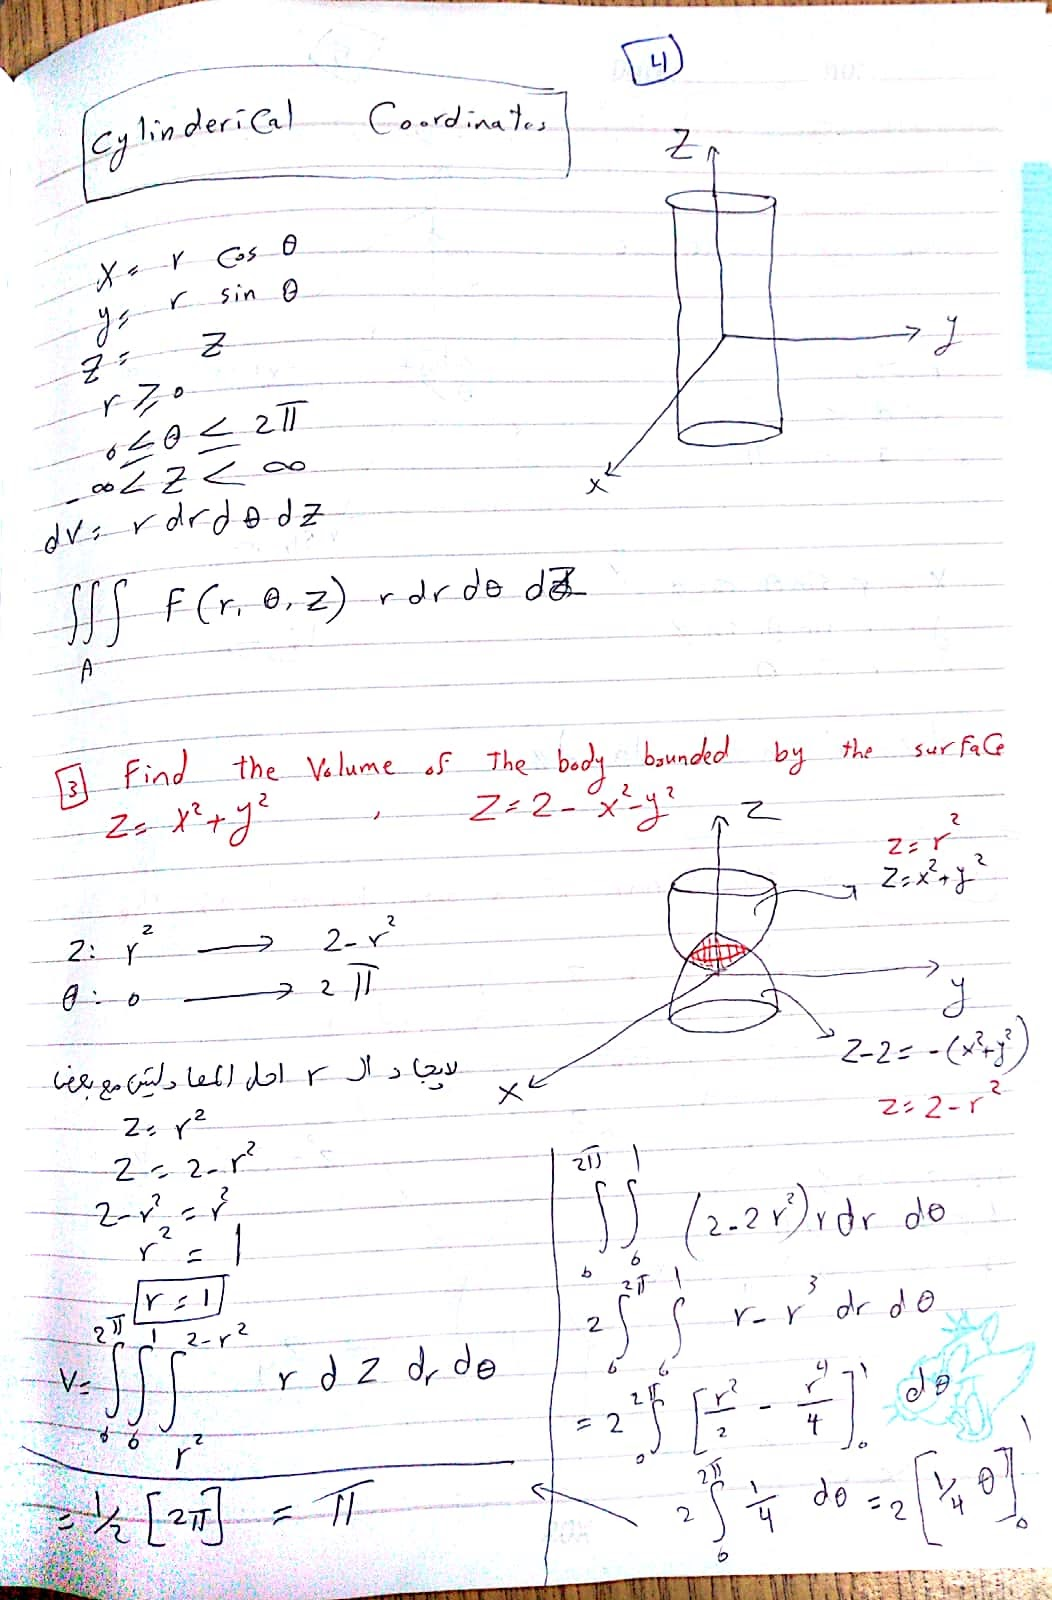 cylindrical coordinates cylindrical coordinates integral cylindrical coordinates to cartesian cylindrical coordinates unit vectors cylindrical coordinates calculator cylindrical coordinates grapher cylindrical coordinates gradient cylindrical coordinates jacobian cylindrical coordinates velocity cylindrical coordinates to rectangular coordinates cylindrical coordinates cross product cylindrical coordinates area element cylindrical coordinates acceleration cylindrical coordinates ansys cylindrical coordinates abaqus cylindrical coordinates area integral cylindrical coordinates animation cylindrical coordinates ansys workbench cylindrical coordinates arc length cylindrical coordinates angular velocity cylindrical coordinates autocad cylindrical coordinates basis vectors cylindrical coordinates bessel function cylindrical coordinates boundary conditions cylindrical coordinates bounds cylindrical coordinates base laplacian cylindrical coordinates bessel heat equation cylindrical coordinates bessel bipolar cylindrical coordinates bessel's equation cylindrical coordinates mass balance cylindrical coordinates cylindrical coordinates curl cylindrical coordinates conversion cylindrical coordinates converter cylindrical coordinates change of variables cylindrical coordinates comsol cylindrical coordinates conduction cylindrical coordinates control volume cylindrical coordinates continuity equation cylindrical coordinates derivation cylindrical coordinates divergence cylindrical coordinates da cylindrical coordinates dynamics cylindrical coordinates dot product cylindrical coordinates dv cylindrical coordinates double integral cylindrical coordinates diagram cylindrical coordinates differential equation cylindrical coordinates differential volume d/dx in cylindrical coordinates cylindrical coordinates 3d graphing cylindrical coordinates examples cylindrical coordinates equation cylindrical coordinates equation of motion cylindrical coordinates electromagnetics cylindrical coordinates electric field cylindrical coordinates equation calculator cylindrical coordinates ellipse cylindrical coordinates energy equation cylindrical coordinates euler equation cylindrical coordinates explanation cylindrical coordinates formula cylindrical coordinates from cartesian cylindrical coordinates for a sphere cylindrical coordinates fluid mechanics cylindrical coordinates finite volume cylindrical coordinates fluent cylindrical coordinates finite difference cylindrical coordinates for heat conduction cylindrical coordinates for paraboloid cylindrical coordinates finite difference method transform to cylindrical coordinates f=10ax cylindrical coordinates graphing calculator cylindrical coordinates geogebra cylindrical coordinates grapher wolfram cylindrical coordinates gradient derivation cylindrical coordinates gnuplot cylindrical coordinates green function cylindrical coordinates grid cylindrical coordinates gravity cylindrical coordinates heat transfer cylindrical coordinates helix cylindrical coordinates hamiltonian cylindrical coordinates hydrogen atom cylindrical coordinates how to find r finite difference cylindrical coordinates heat equation heat transfer cylindrical coordinates derivation hemisphere in cylindrical coordinates spherical harmonics cylindrical coordinates hyperbolic cylindrical coordinates cylindrical coordinates integral calculator cylindrical coordinates in terms of cartesian cylindrical coordinates in matlab cylindrical coordinates in ansys cylindrical coordinates in abaqus cylindrical coordinates into cartesian cylindrical coordinates images cylindrical coordinates introduction cylindrical coordinates in tikz cylindrical coordinates jacobian matrix jacobian elliptic cylindrical coordinates jacobian transformation cylindrical coordinates jeans equation cylindrical coordinates jerk cylindrical coordinates hydraulic jump cylindrical coordinates cylindrical coordinates khan academy cylindrical coordinates kinematics cylindrical coordinates kinetic energy cylindrical and spherical coordinates khan academy k epsilon model cylindrical coordinates kinematic equations cylindrical coordinates kerr metric cylindrical coordinates k epsilon cylindrical coordinates cylindrical coordinates laplacian cylindrical coordinates line integral cylindrical coordinates line element cylindrical coordinates lagrangian cylindrical coordinates limits cylindrical coordinates latex cylindrical coordinates laplace equation cylindrical coordinates laplacian derivation cylindrical coordinates ls dyna cylindrical coordinates lamar.edu cylindrical coordinates matlab cylindrical coordinates mathematica cylindrical coordinates metric cylindrical coordinates matrix cylindrical coordinates magnitude cylindrical coordinates matlab plot cylindrical coordinates multivariable calculus cylindrical coordinates mechanics cylindrical coordinates maple cylindrical coordinates momentum equation cylindrical coordinates nabla cylindrical coordinates normal vector cylindrical coordinates not centered at origin cylindrical coordinates negative radius cylindrical coordinates nastran cylindrical coordinates navier stokes derivation cylindrical coordinates names cylindrical coordinates notes unit normal cylindrical coordinates navier's equation cylindrical coordinates cylindrical coordinates of a sphere cylindrical coordinates of a cone cylindrical coordinates openfoam cylindrical coordinates orthogonal cylindrical coordinates order of integration cylindrical coordinates order cylindrical coordinates of a paraboloid cylindrical coordinates operators cylindrical coordinates of vector cylindrical coordinates on matlab cylindrical coordinates pdf cylindrical coordinates plotter cylindrical coordinates physics cylindrical coordinates parameterization cylindrical coordinates patrickjmt cylindrical coordinates ppt cylindrical coordinates problems and solutions cylindrical coordinates position vector cylindrical coordinates partial derivatives cylindrical coordinates plot mathematica cylindrical coordinates questions quadrupole moment cylindrical coordinates cylindrical coordinates robot cylindrical coordinates rho cylindrical coordinates rotation cylindrical coordinates r cylindrical coordinates rotor cylindrical coordinates right hand rule cylindrical coordinates relationship cylindrical coordinates rotation matrix cylindrical coordinates radial direction cylindrical coordinates reflection r cylindrical coordinates z cross r cylindrical coordinates r theta z cylindrical coordinates r vector in cylindrical coordinates cylindrical coordinates z=r r=5 in cylindrical coordinates r plot cylindrical coordinates cylindrical coordinates find r cylindrical coordinates surface integral cylindrical coordinates system cylindrical coordinates sphere cylindrical coordinates stress cylindrical coordinates system pdf cylindrical coordinates scale factors cylindrical coordinates s cylindrical coordinates stress tensor cylindrical coordinates spherical cylindrical coordinates strain cylindrical coordinates triple integral cylindrical coordinates to spherical cylindrical coordinates transformation cylindrical coordinates theta cylindrical coordinates to rectangular calculator cylindrical coordinates triple integral examples cylindrical coordinates to cartesian matlab cylindrical coordinates triple integral calculator cylindrical coordinates unit vectors to cartesian cylindrical coordinates unit vectors proof cylindrical coordinates uses parabolic cylindrical coordinates unit vectors spherical to cylindrical coordinates unit vectors elliptic cylindrical coordinates unit vectors are cylindrical coordinates unique use cylindrical coordinates to calculate integration using cylindrical coordinates cylindrical coordinates volume element cylindrical coordinates vector cylindrical coordinates vs spherical coordinates cylindrical coordinates volume cylindrical coordinates vs polar coordinates cylindrical coordinates volume integral cylindrical coordinates vorticity cylindrical coordinates vs cartesian cylindrical coordinates volume of sphere del cross v cylindrical coordinates cylindrical coordinates wolfram cylindrical coordinates wiki cylindrical coordinates wolfram alpha cylindrical coordinates wave equation cross product cylindrical coordinates wiki plot cylindrical coordinates wolfram alpha gradient in cylindrical coordinates wiki curl in cylindrical coordinates wolfram why use cylindrical coordinates wave equation cylindrical coordinates solution cylindrical coordinates x y z cylindrical coordinates x^2+y^2 cylindrical coordinates x= x hat in cylindrical coordinates x^2 in cylindrical coordinates cylindrical coordinates sqrt(x^2+y^2) x cylindrical coordinates cylindrical coordinates youtube cylindrical coordinates y y hat in cylindrical coordinates y in cylindrical coordinates cylindrical coordinates z z cylindrical coordinates x y z cylindrical coordinates 1d cylindrical coordinates cylindrical coordinates 2d continuity equation cylindrical coordinates 2d distance between 2 cylindrical coordinates cylindrical and spherical coordinates 2 comsol 2d cylindrical coordinates cylindrical coordinates 3d cylindrical coordinates 3d plot cartesian to cylindrical coordinates 3d matlab plot cylindrical coordinates 3d fourier transform cylindrical coordinates 3d cylindrical coordinates calc 3 3d graph cylindrical coordinates 3 dimensional cylindrical coordinates comsol 3d cylindrical coordinates calc 3 cylindrical coordinates theta = pi/4 cylindrical coordinates